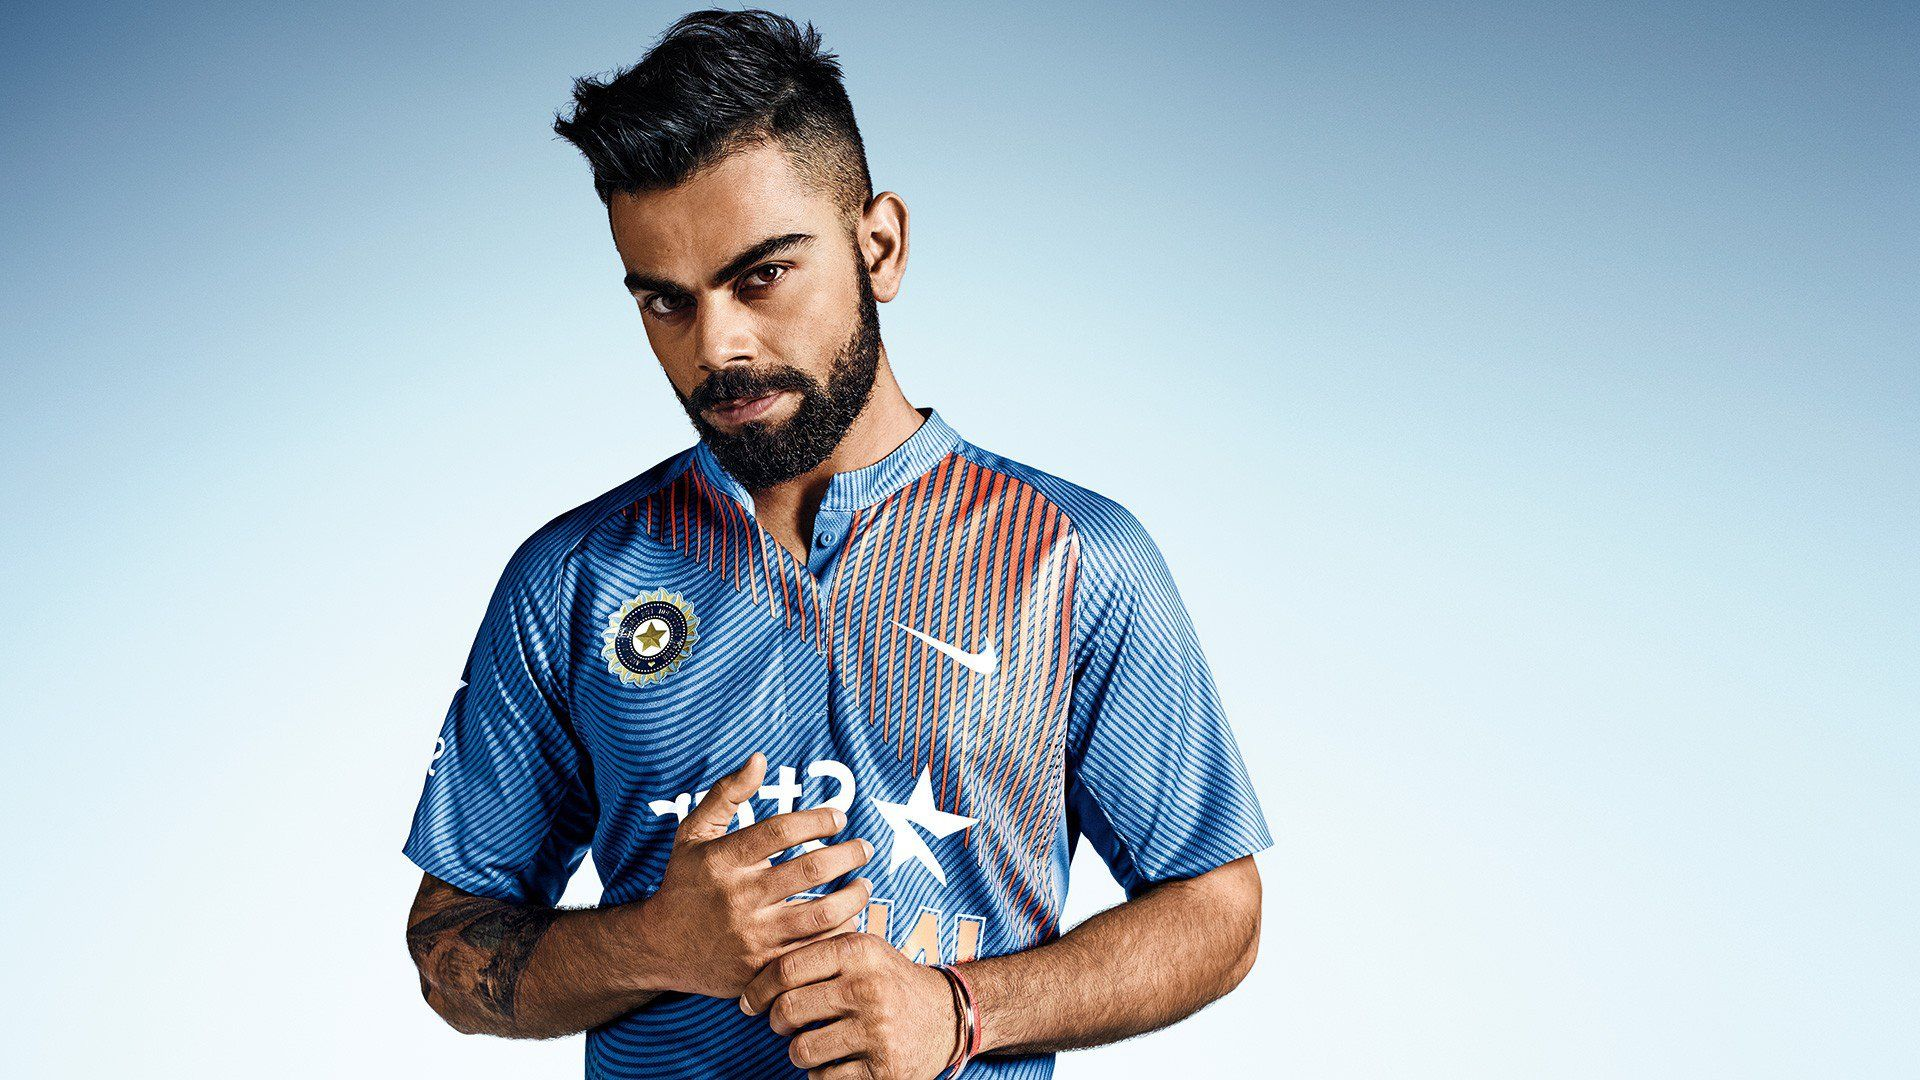 Virat Kohli Wallpaper 13191 Virat Kohli Virat Kohli Wallpapers Cool Photos